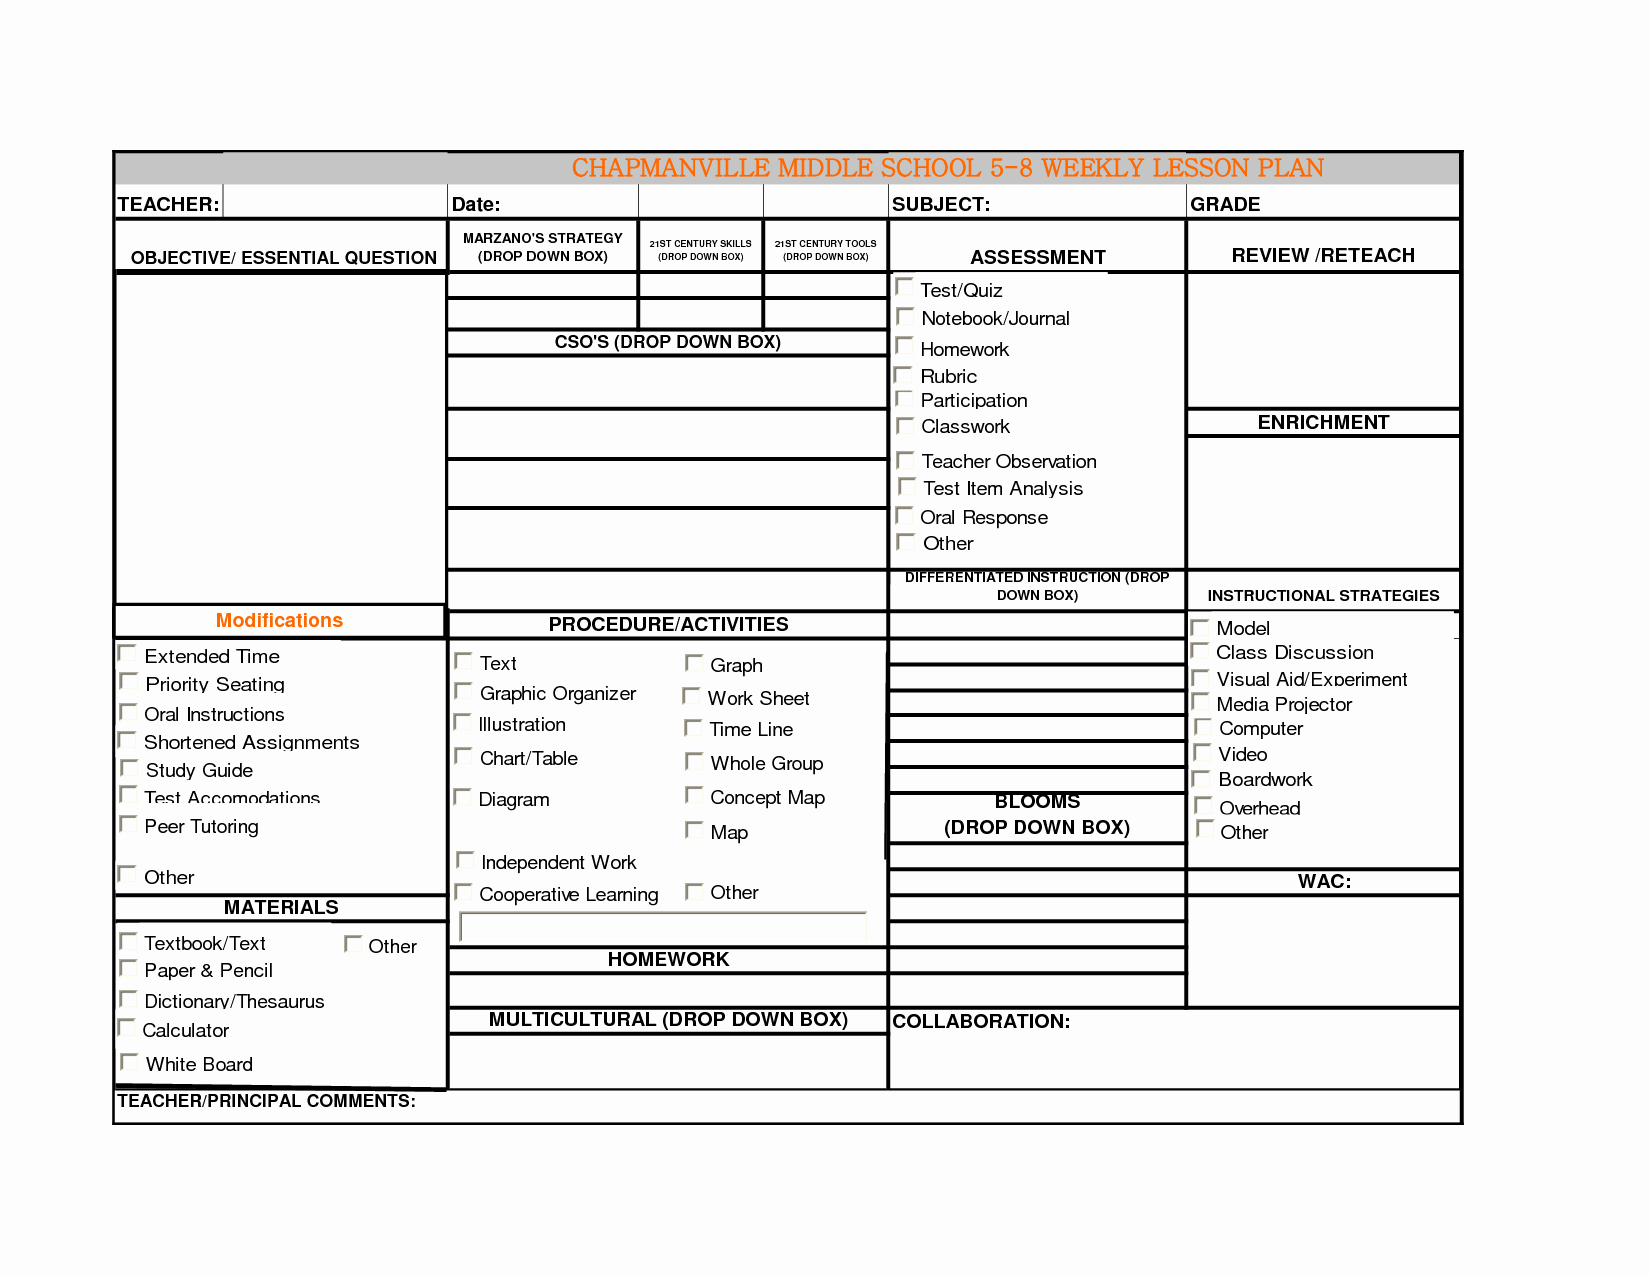 Weekly Lesson Plan Template Lovely High School Weekly Lesson Plan Template Word Mon Core